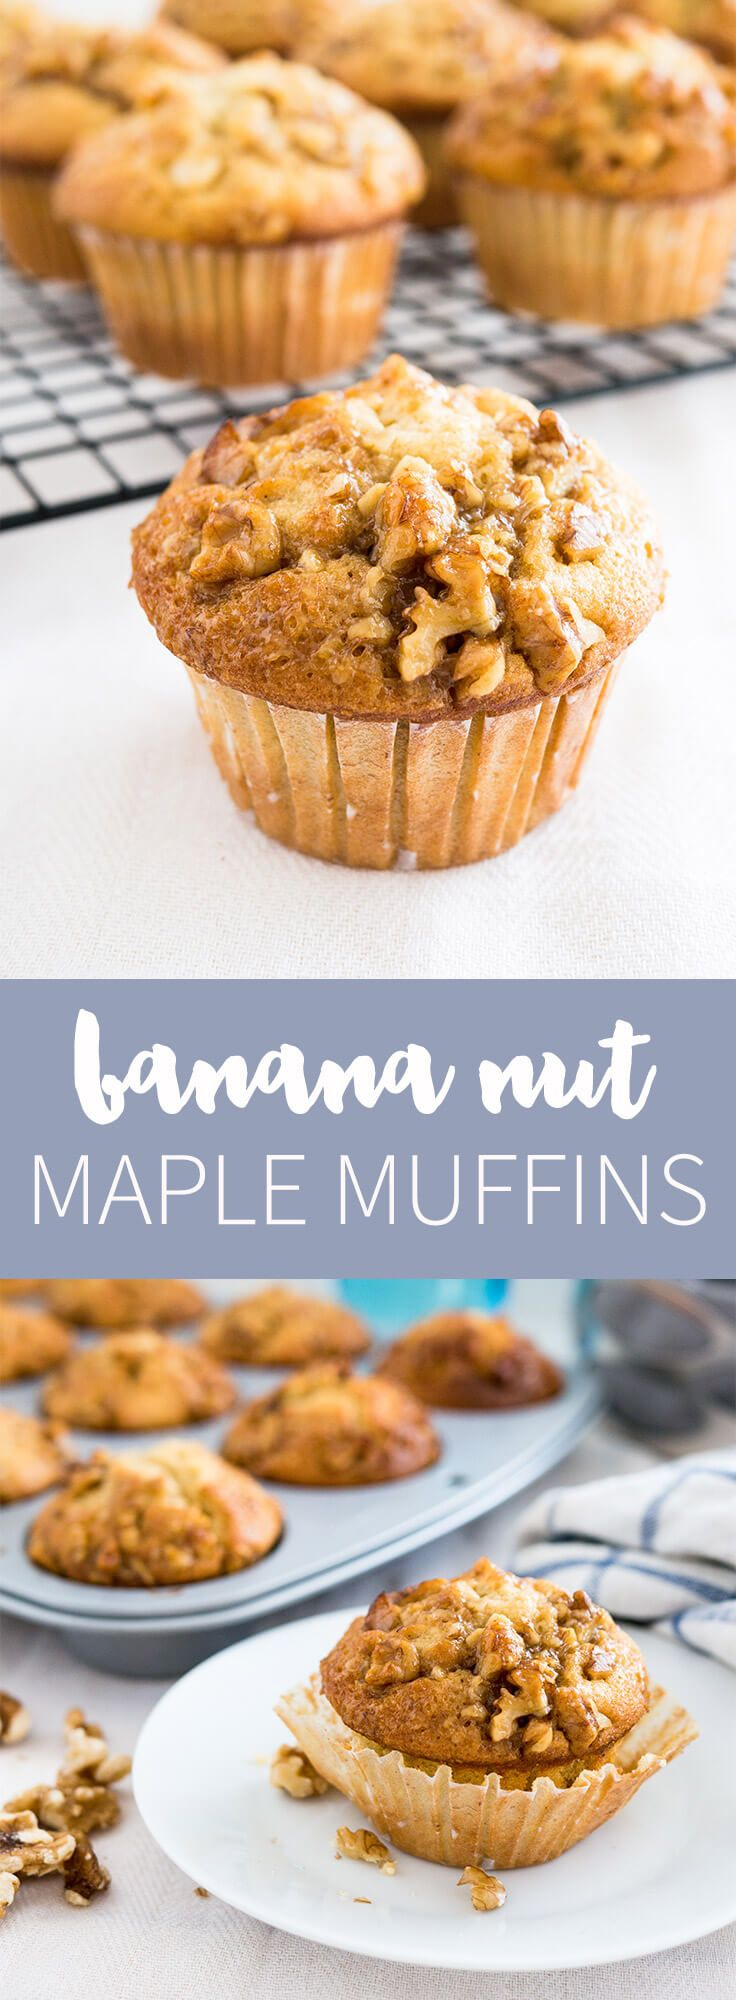 ... about Banana Nut Muffins on Pinterest | Banana Nut, Muffin and Bananas